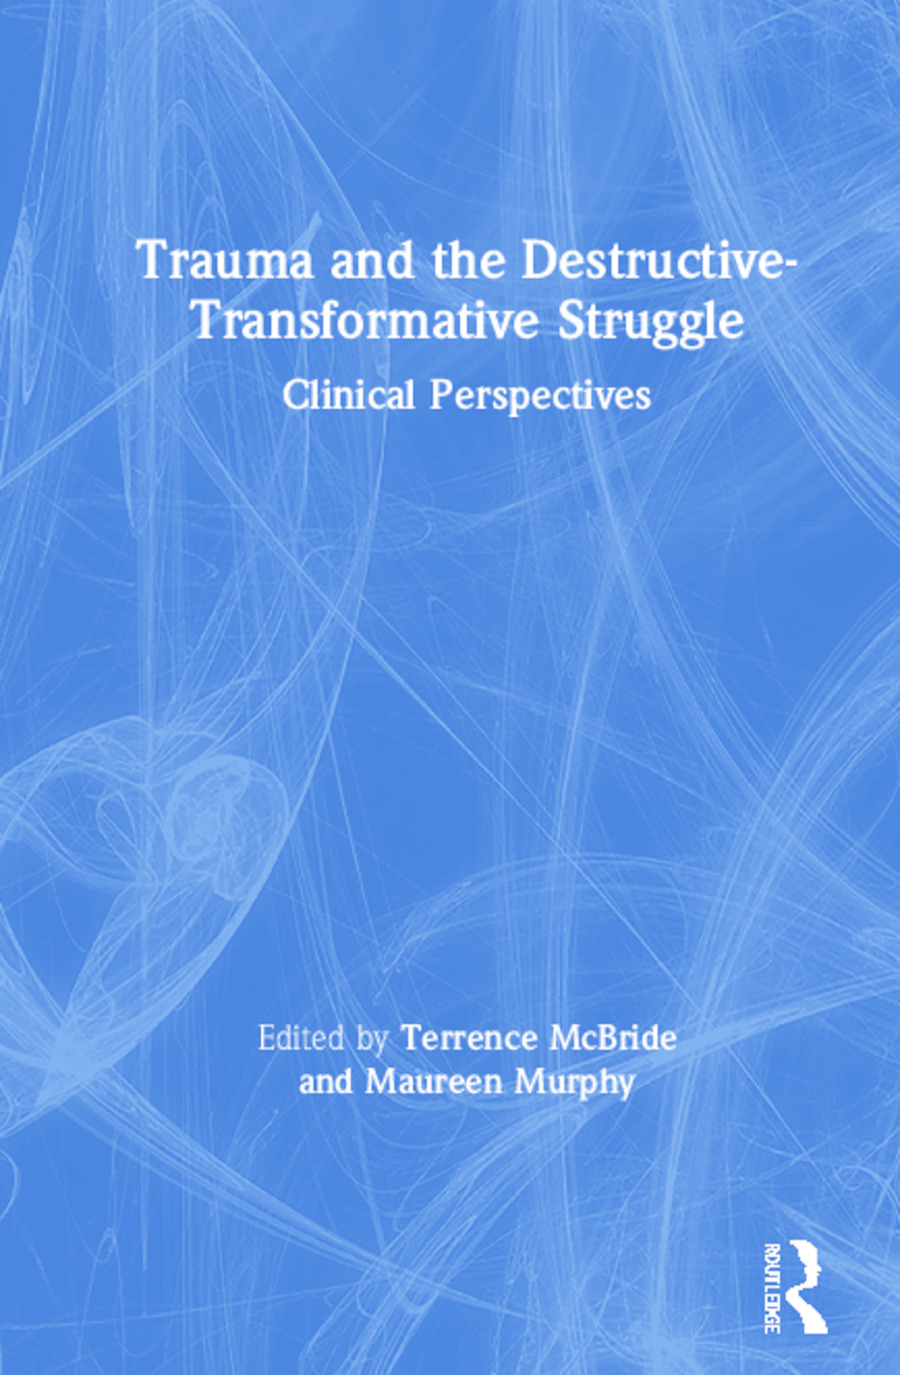 Trauma and the Destructive-Transformative Struggle: Clinical Perspectives book cover